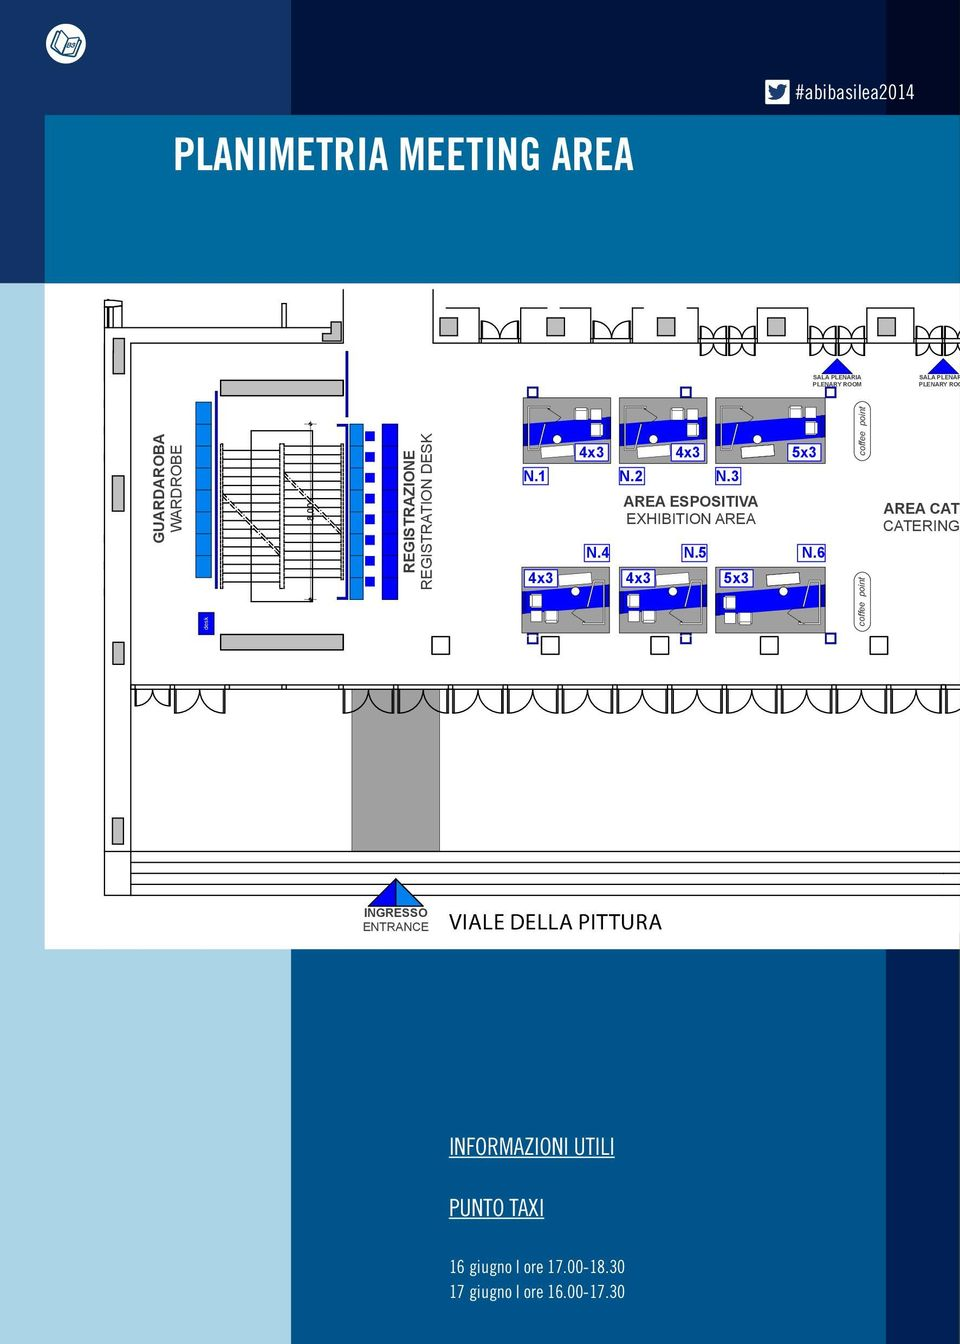 3 AREA ESPOSITIVA EXHIBITION AREA 4x3 4x3 N.5 5x3 5x3 N.